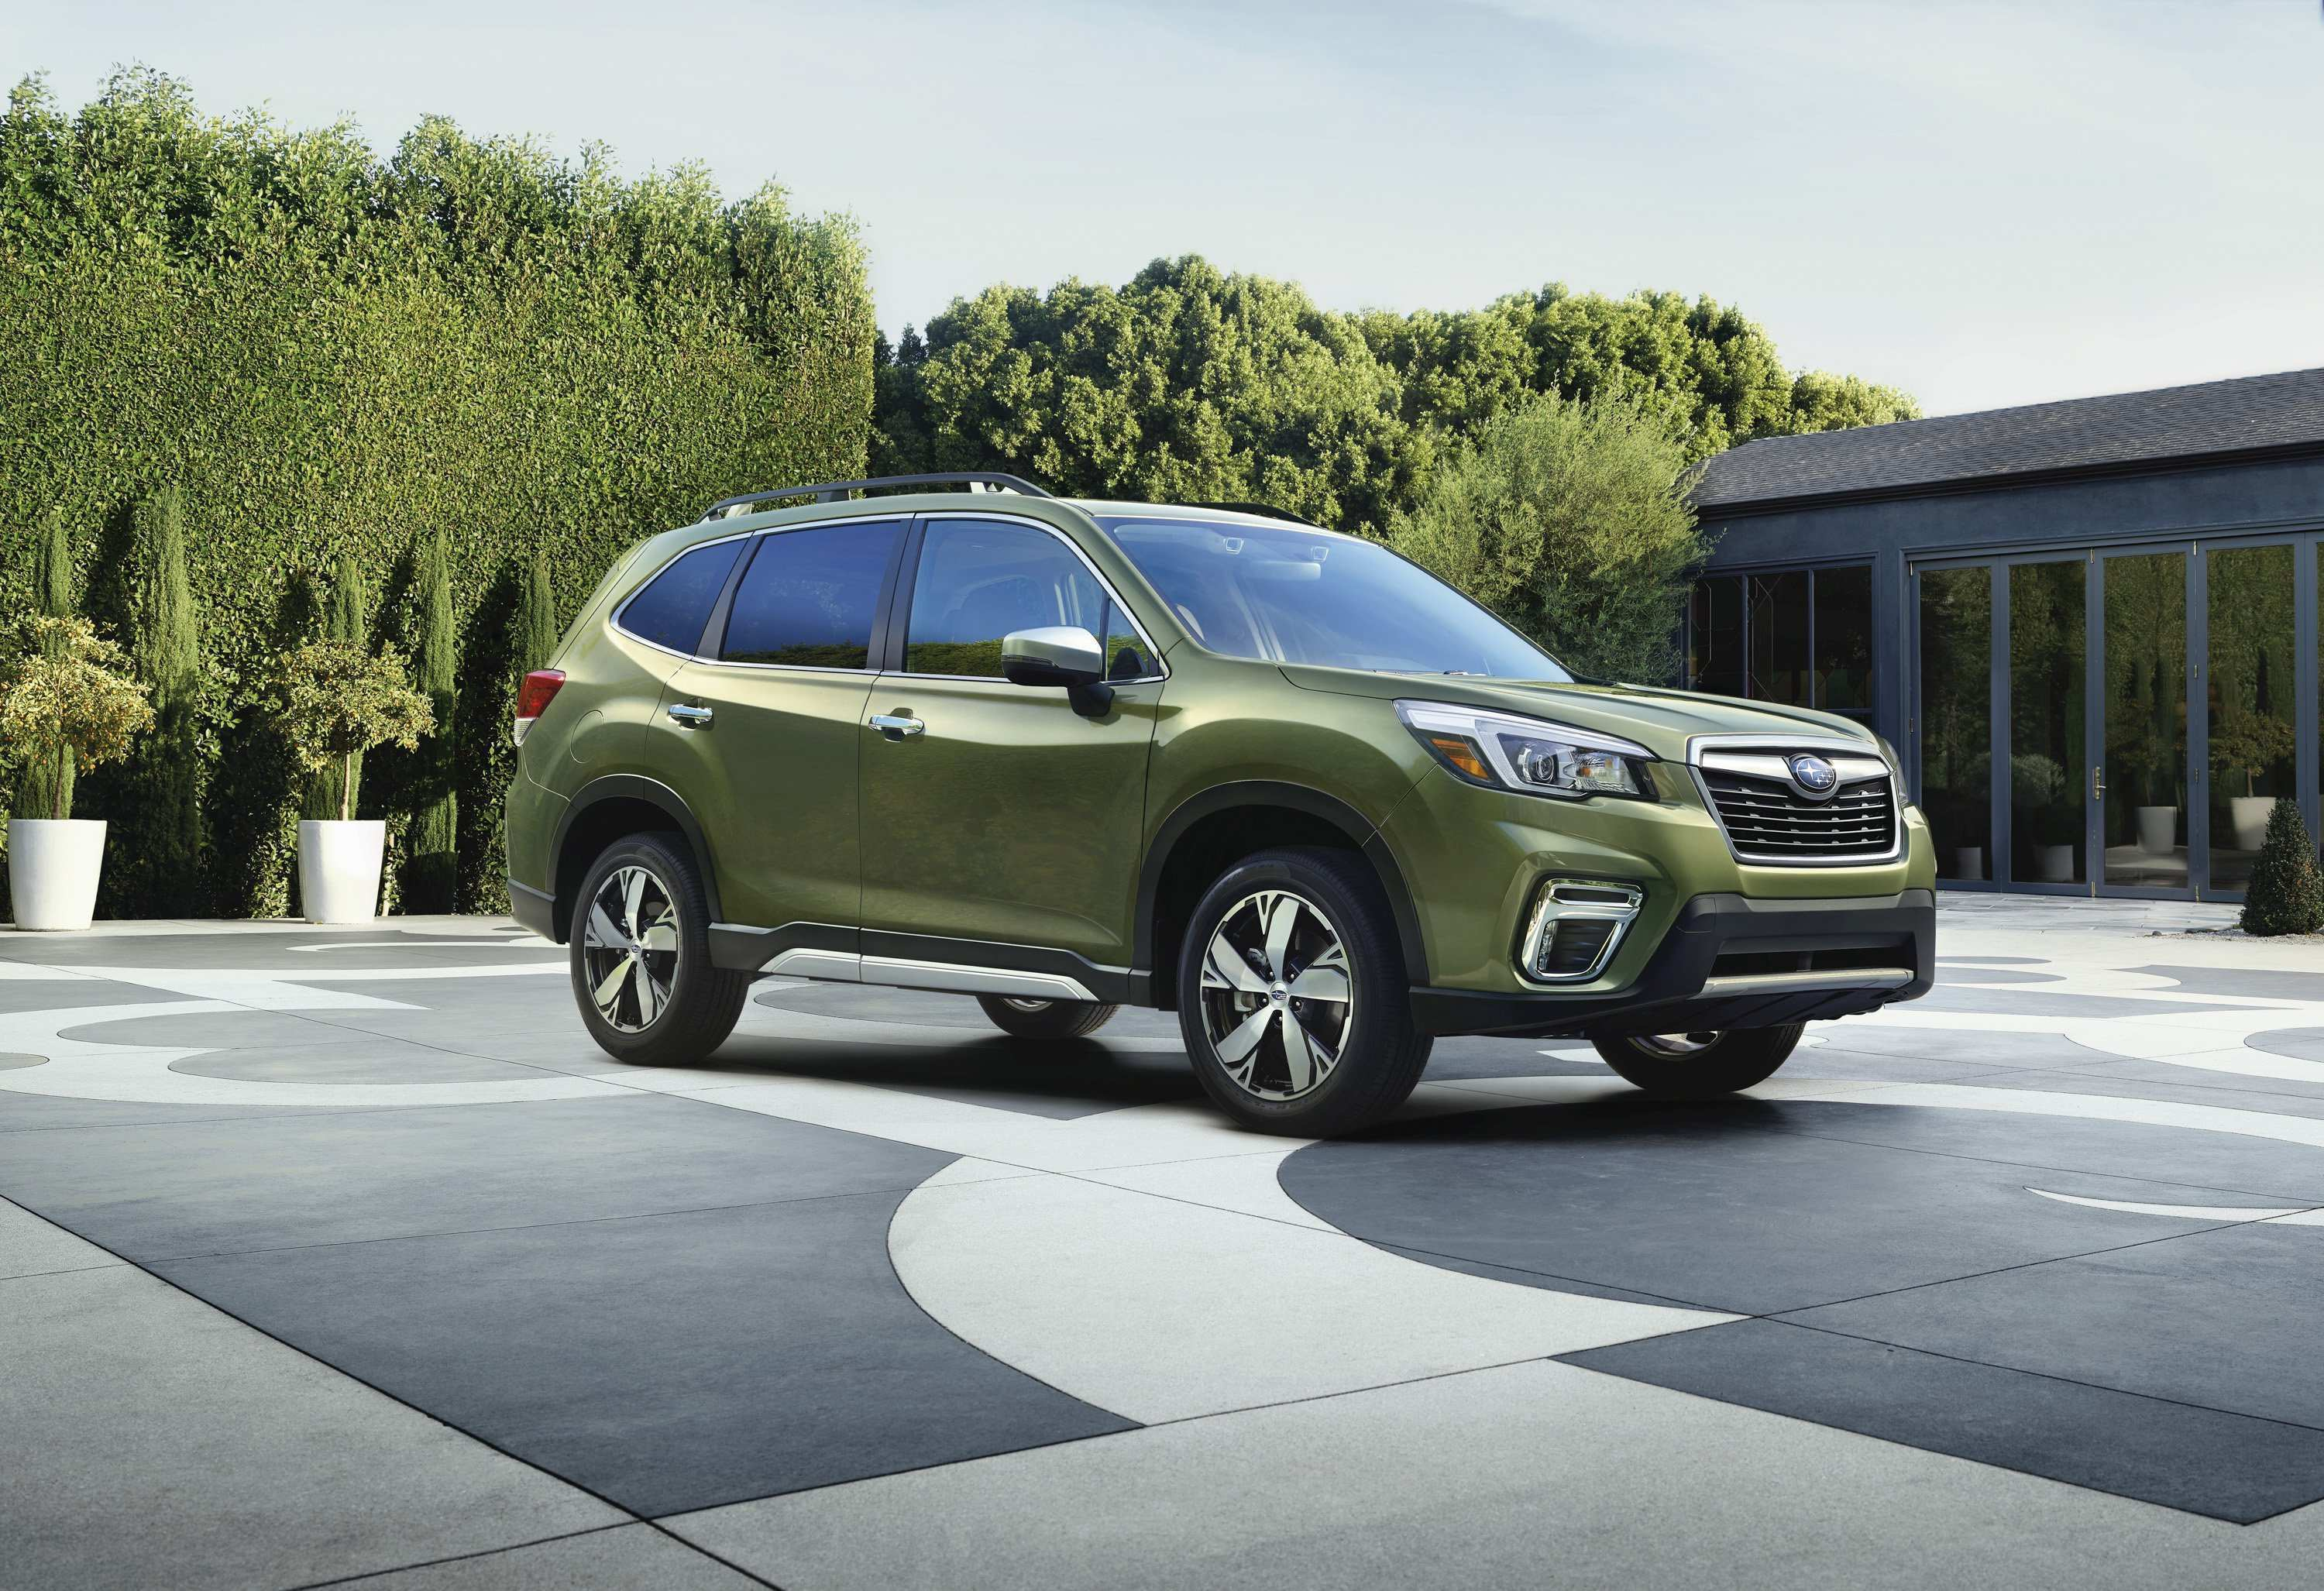 80 All New 2019 Subaru Forester Manual Model